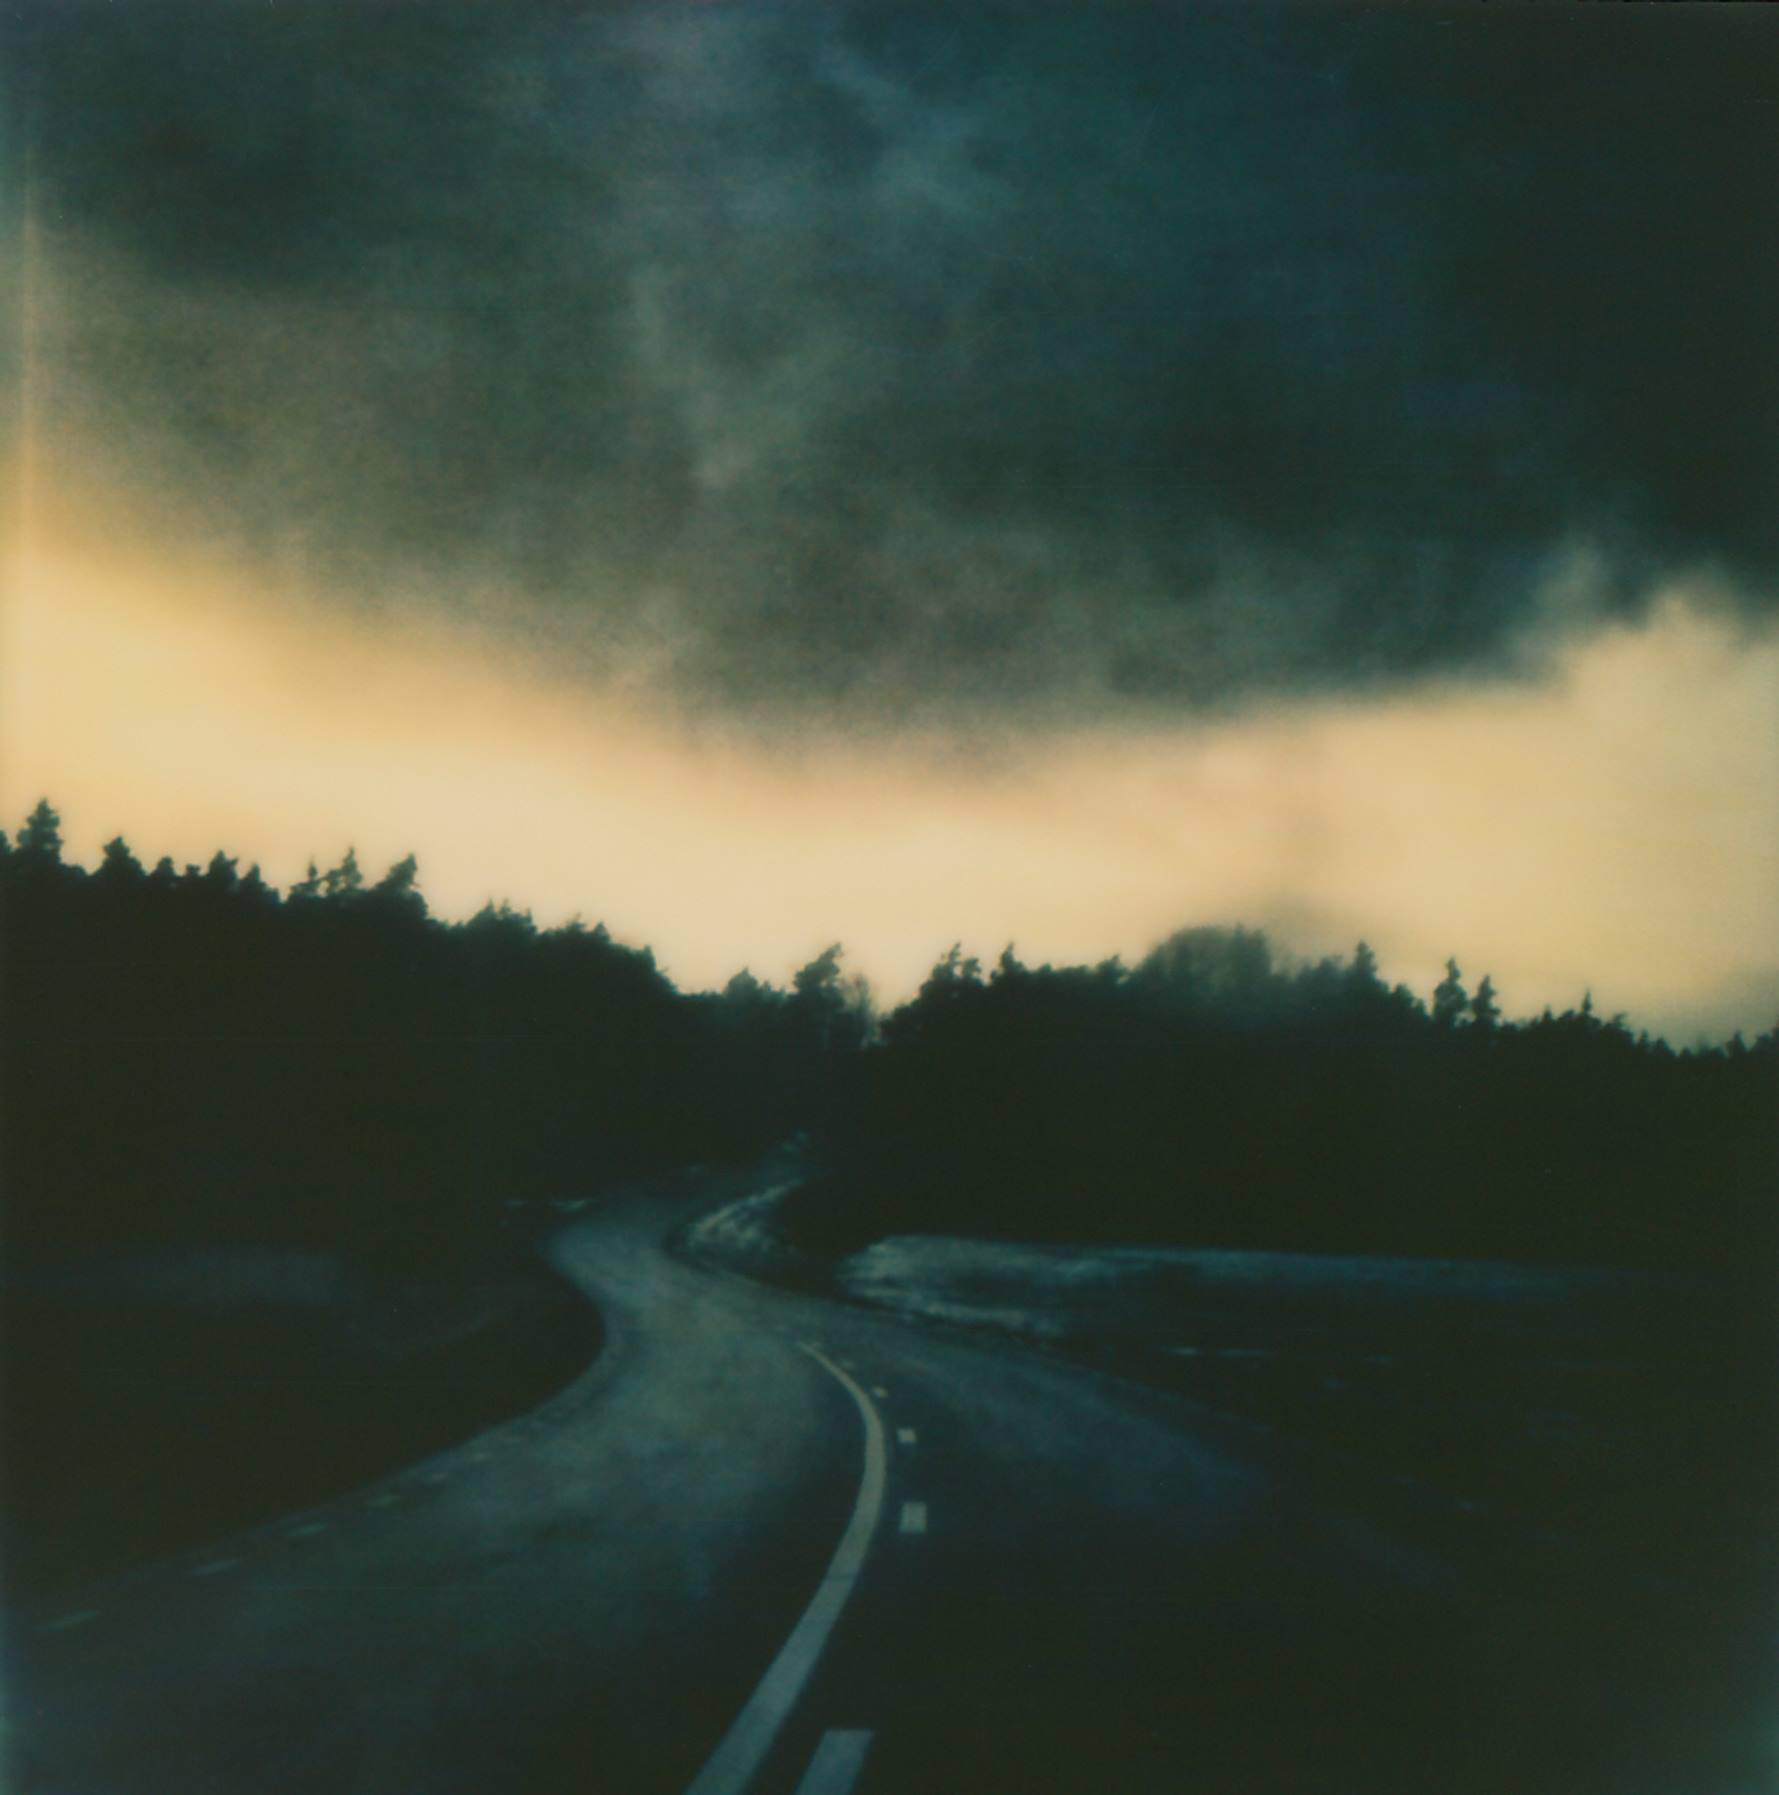 Road Dark Skies | Impossible Project Instant Lab | Impossible Project 70 Color Film | Per Forsström